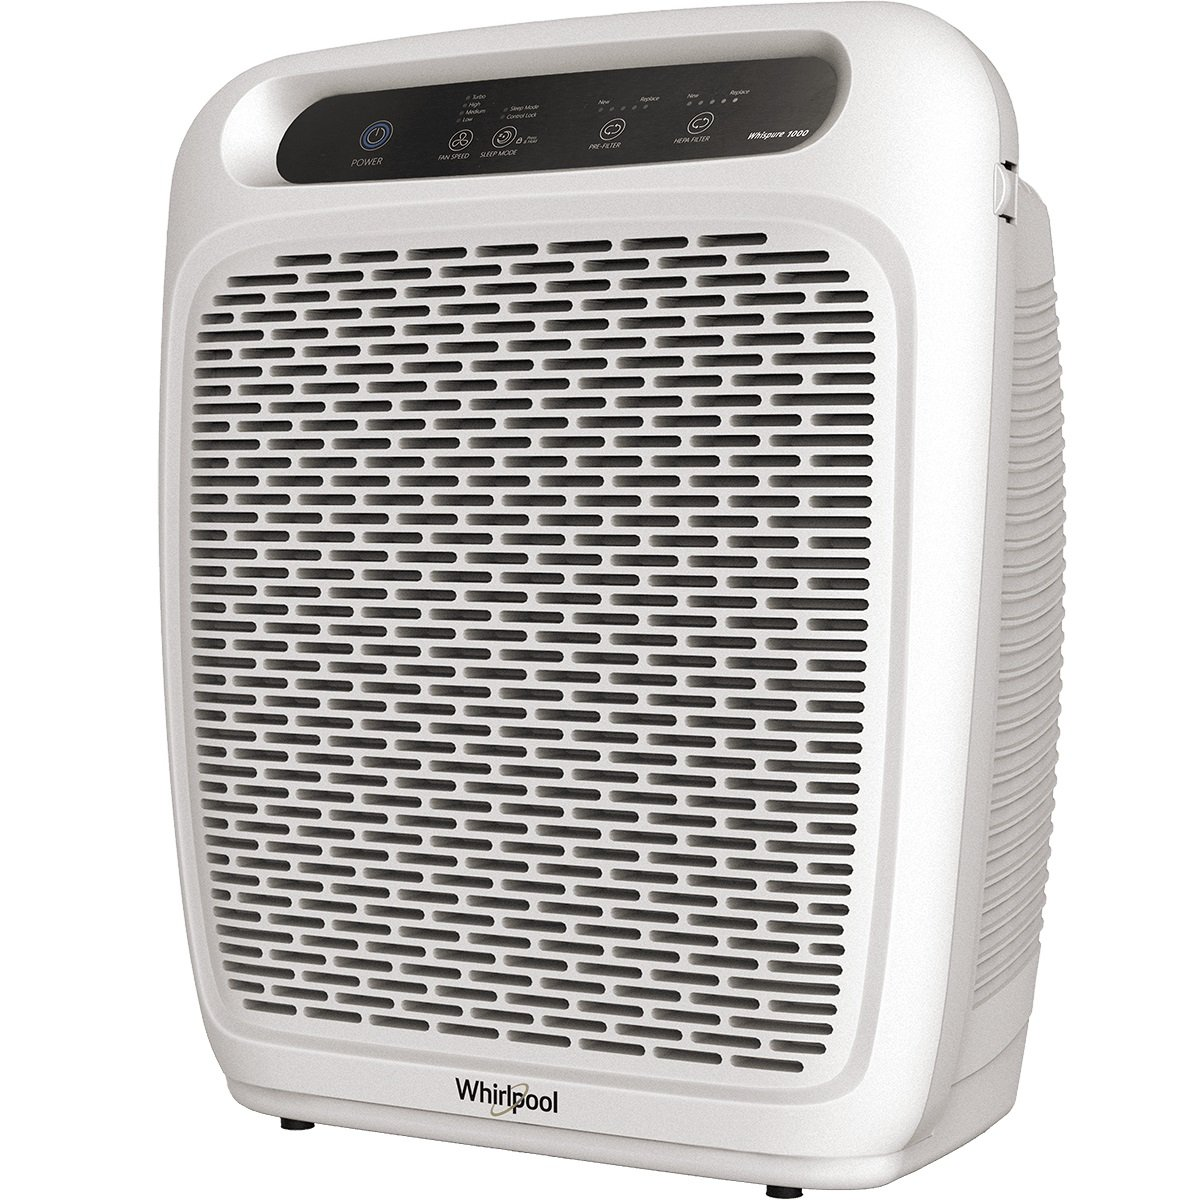 Whirlpool Whispure Air Purifier - WP1000 (Upgrade Ver. of WP500) 490 sq ft TRUE HEPA Filter 8171434K 1183054K, 4-Speed Plus Turbo, Removes Pollen, Pet Dander, Smoke, Odors (WP1000P-Pearl White)